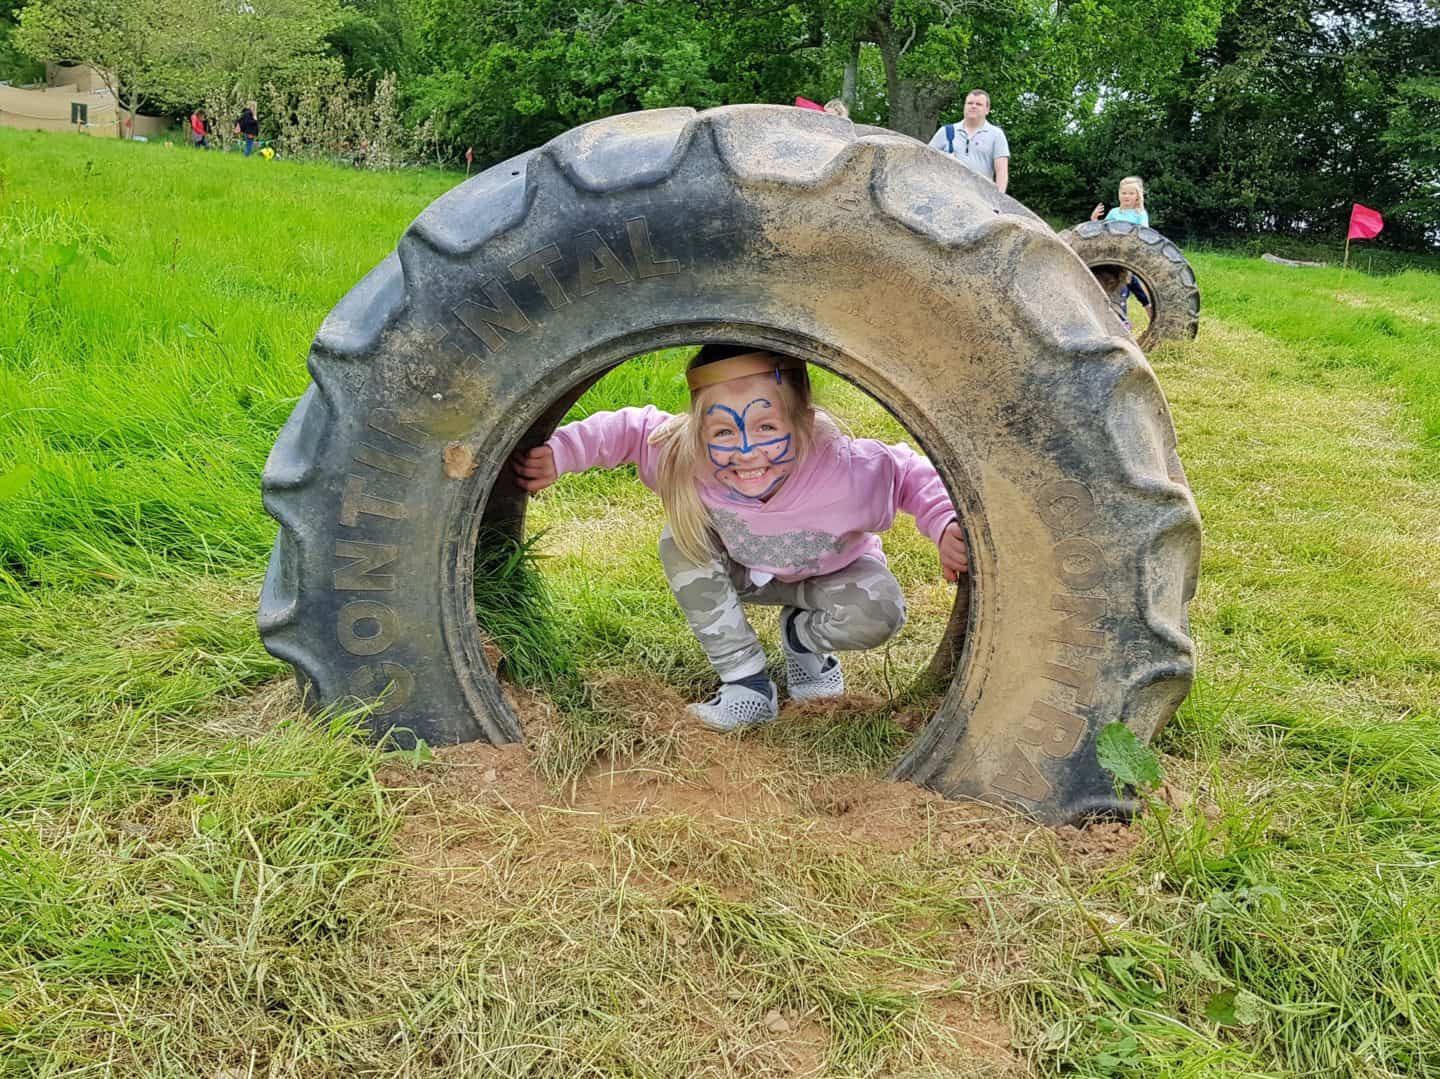 Girl wearing face paints climbing through large tyre